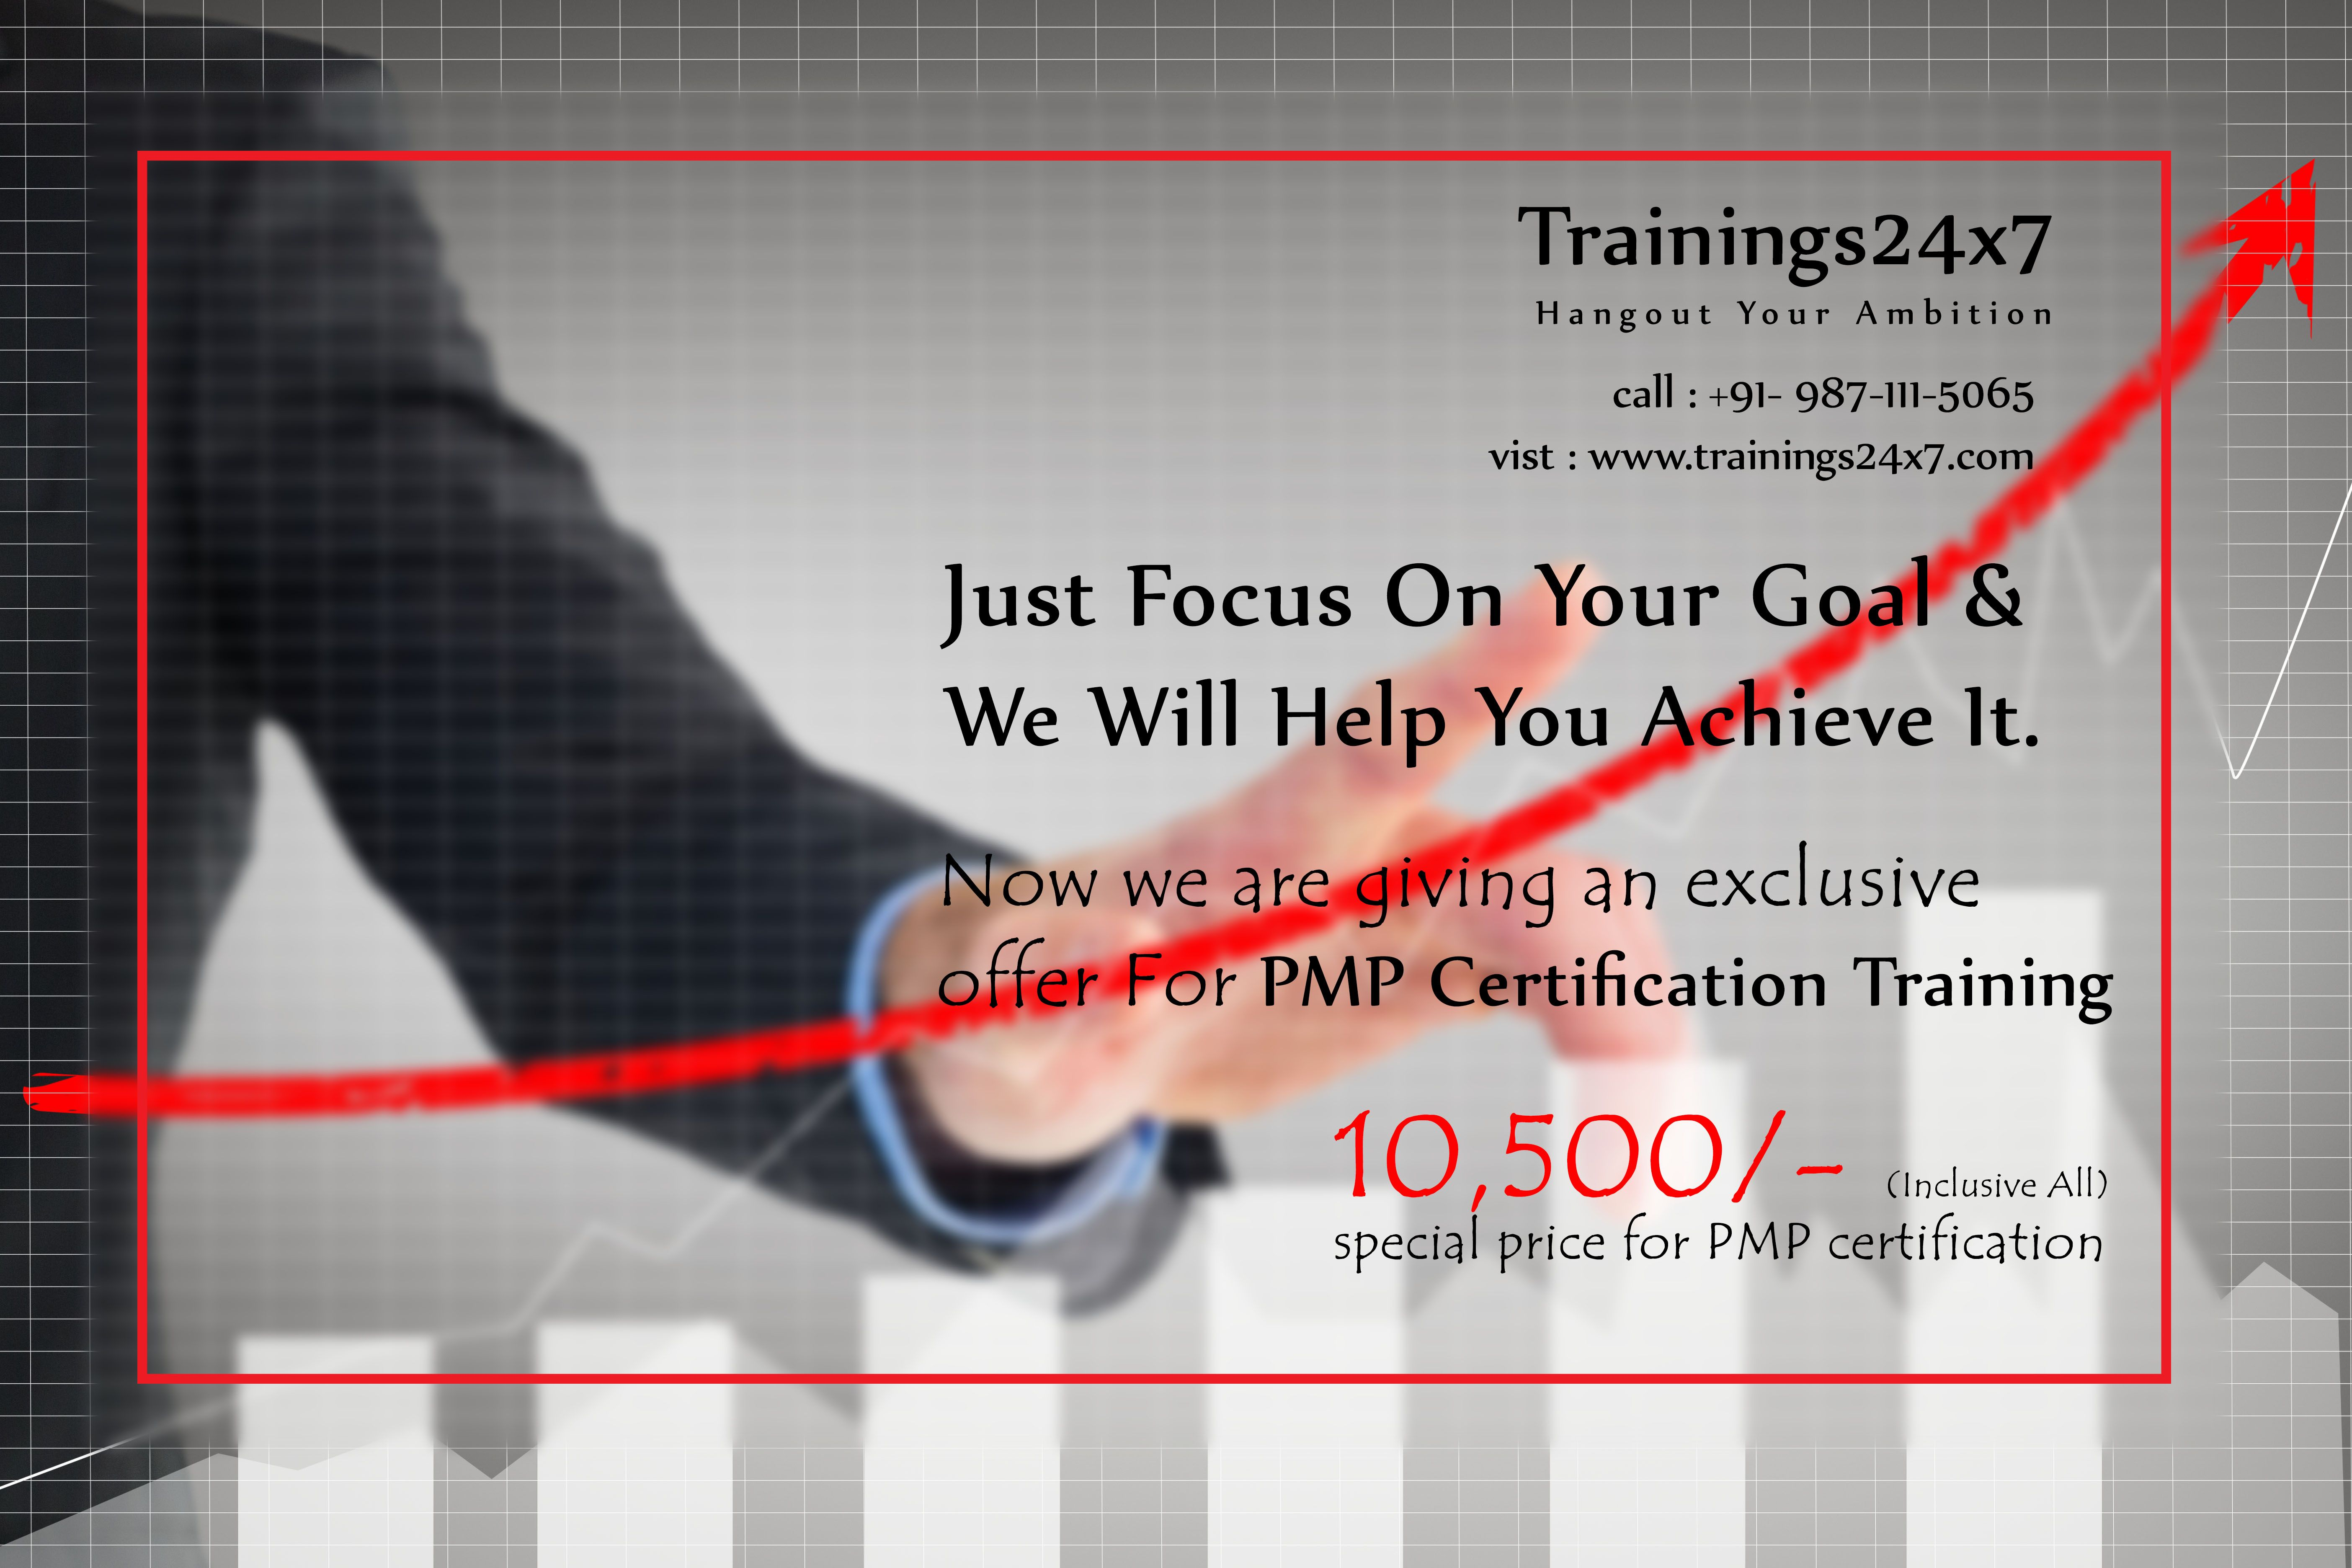 Pmp exam ready before change join our upcoming batch at project management pmp classroom training at 301 preet vihar new delhi offers 35 pdus certificate 6 simulations mobile apps pass guarantee 1betcityfo Images